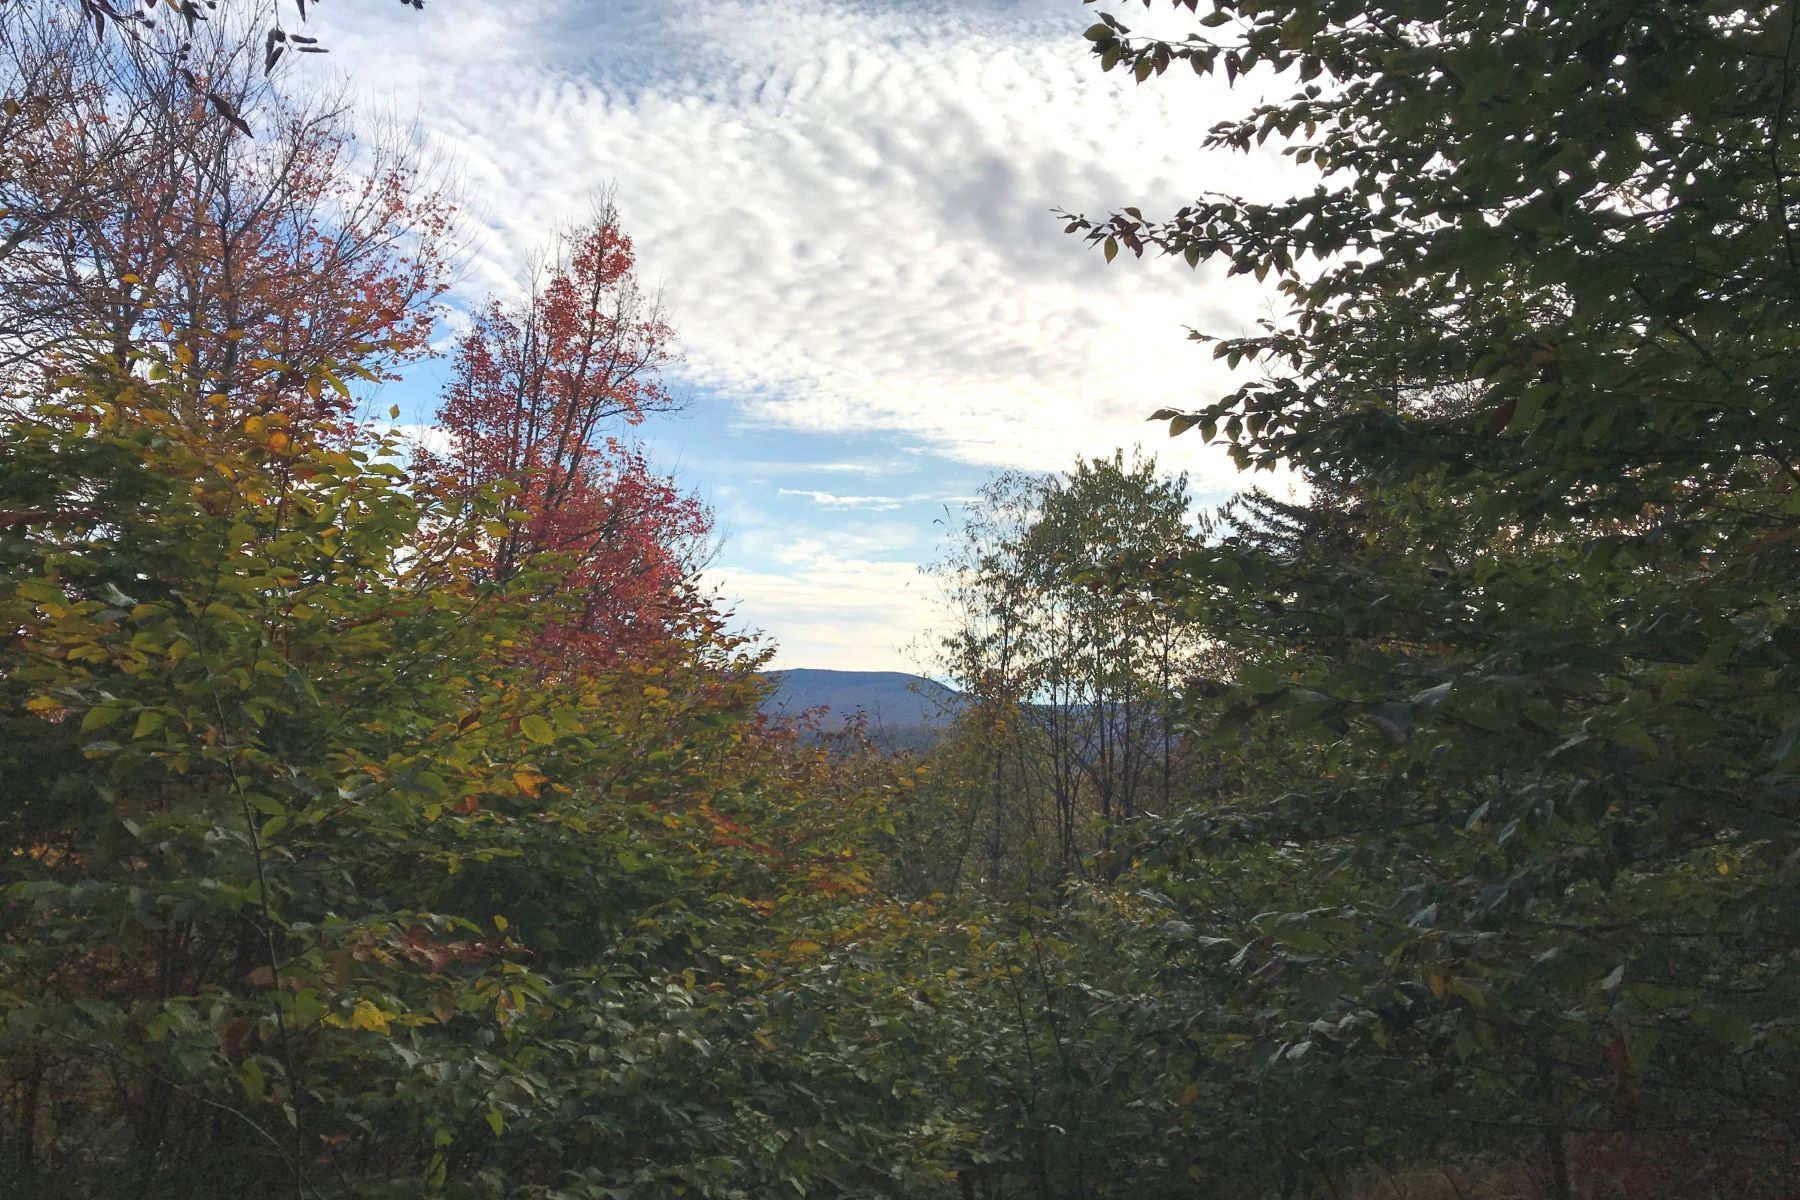 Land for Sale at Panoramic Mountain Views 9155 NYS Route 30 Blue Mountain Lake, New York 12812 United States